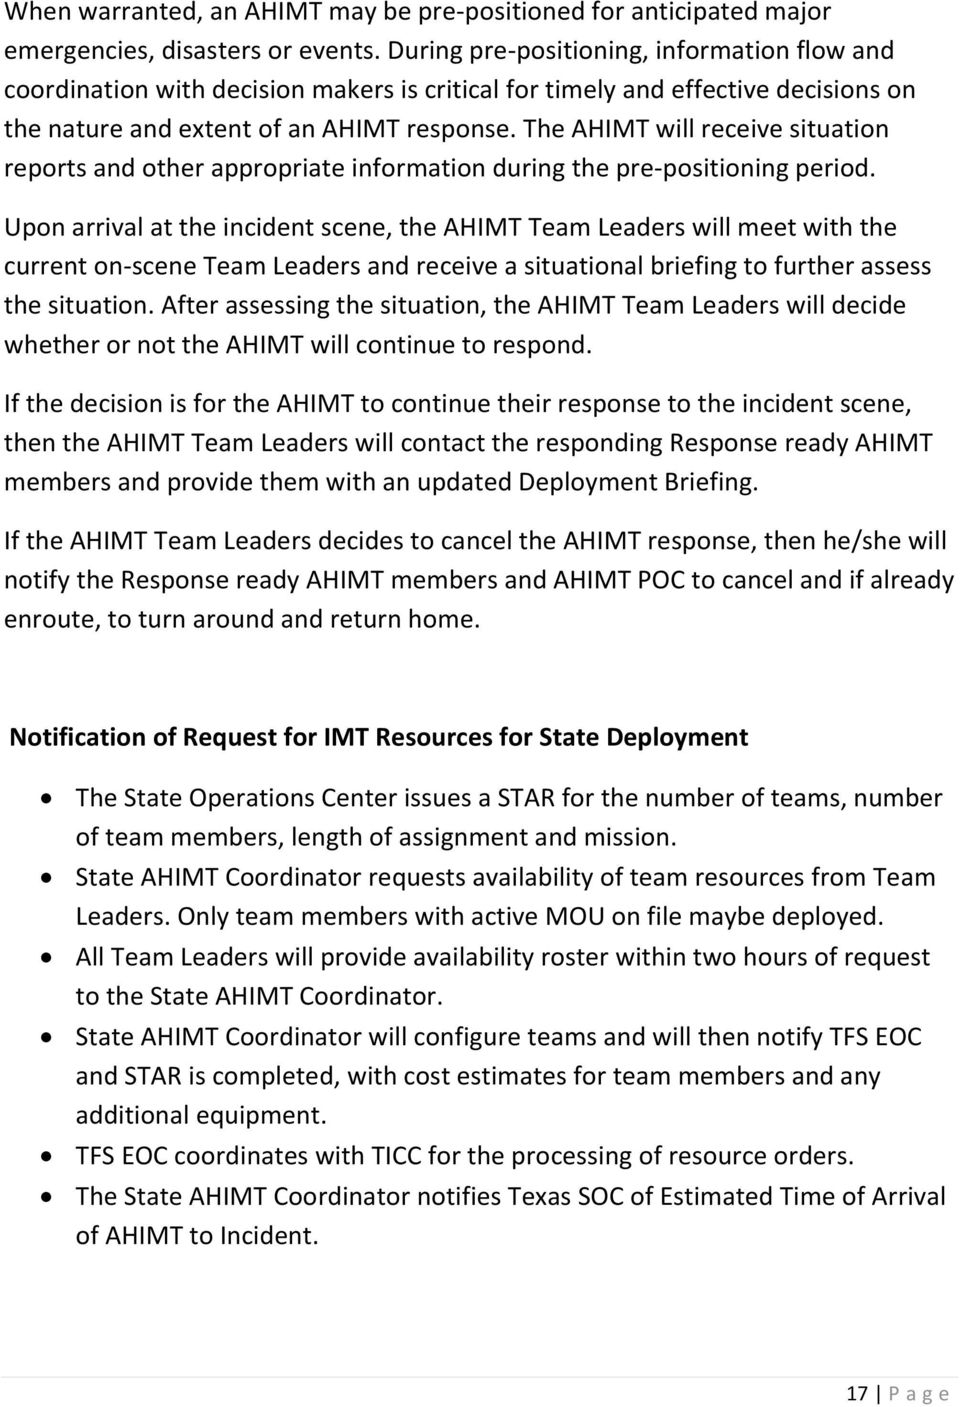 The AHIMT will receive situation reports and other appropriate information during the pre-positioning period.